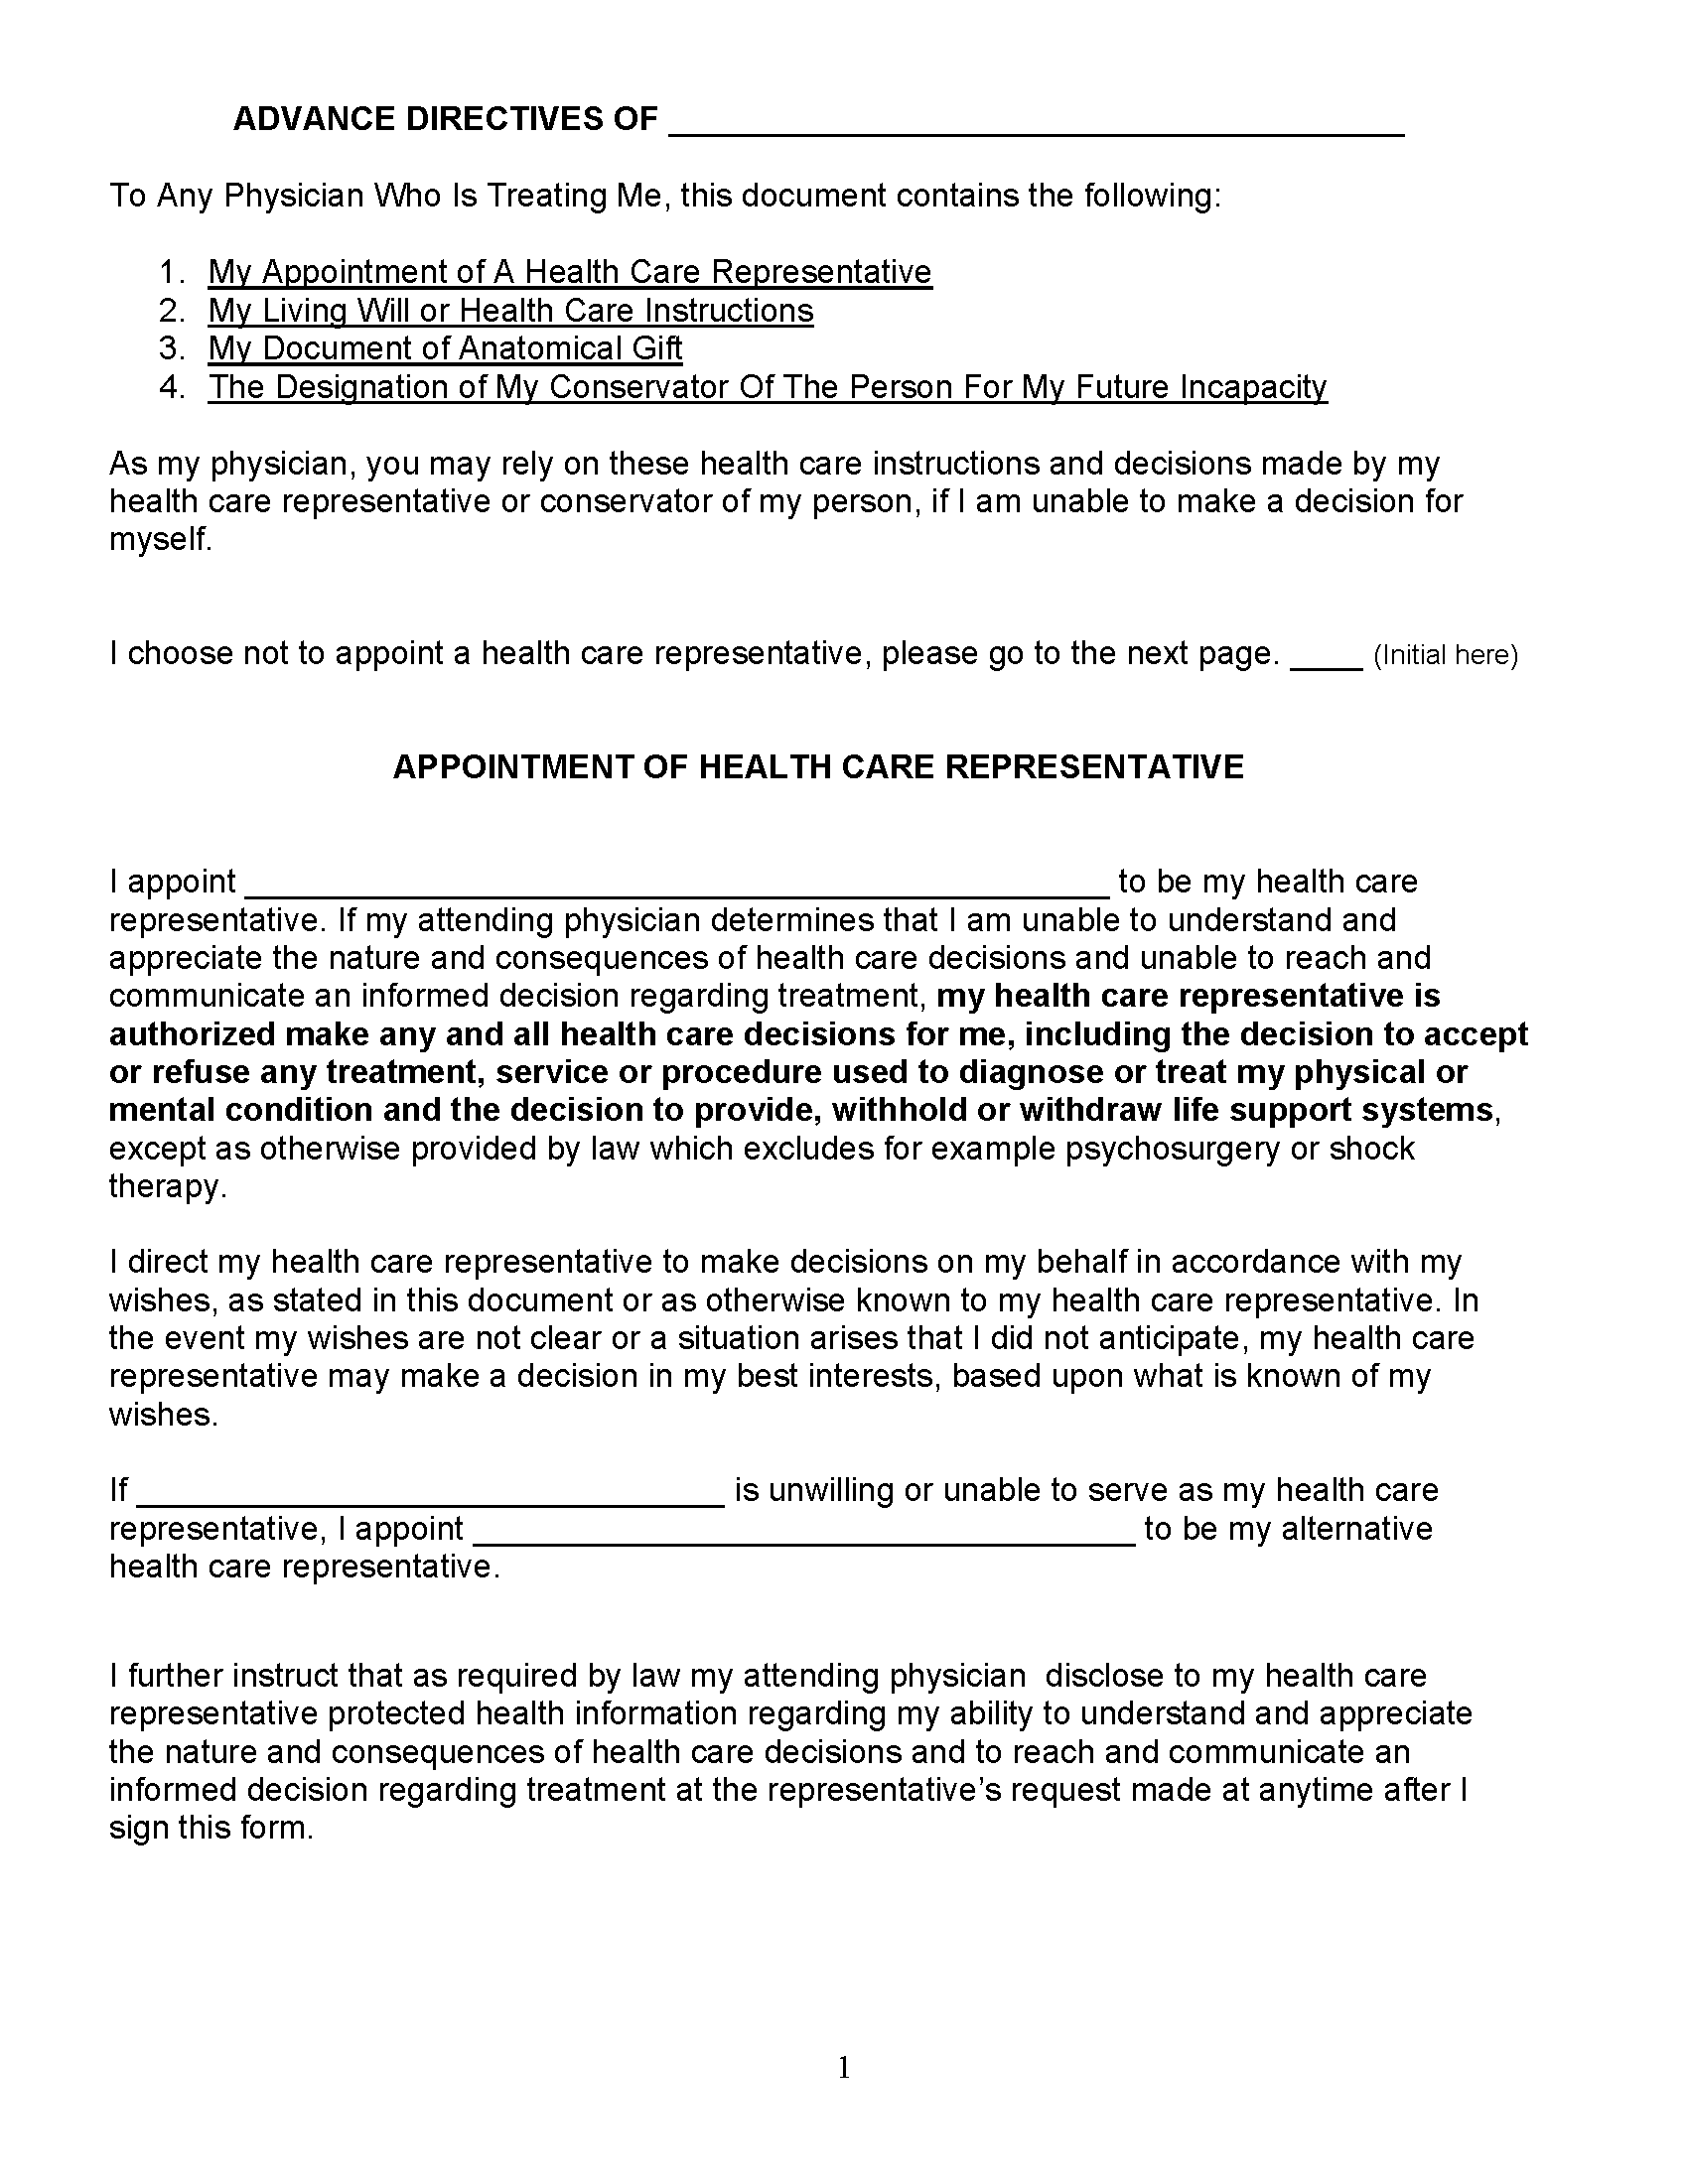 Connecticut Advance Directive For Health Care